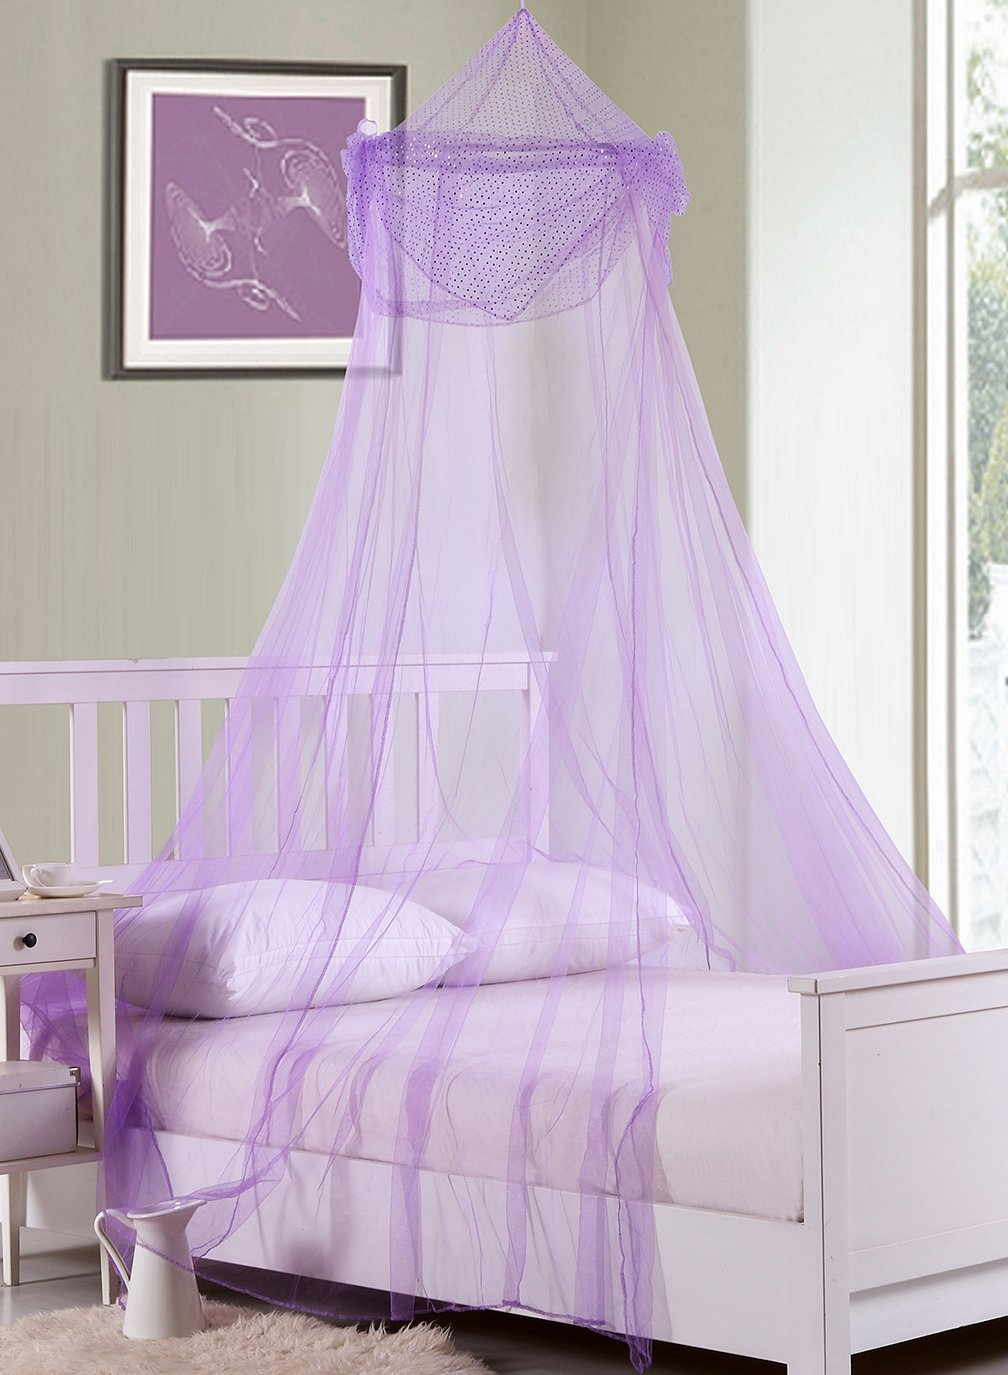 Fantasy Kids Raisinette Collapsible Hoop Sheer Bed Canopy, One Size, Purple